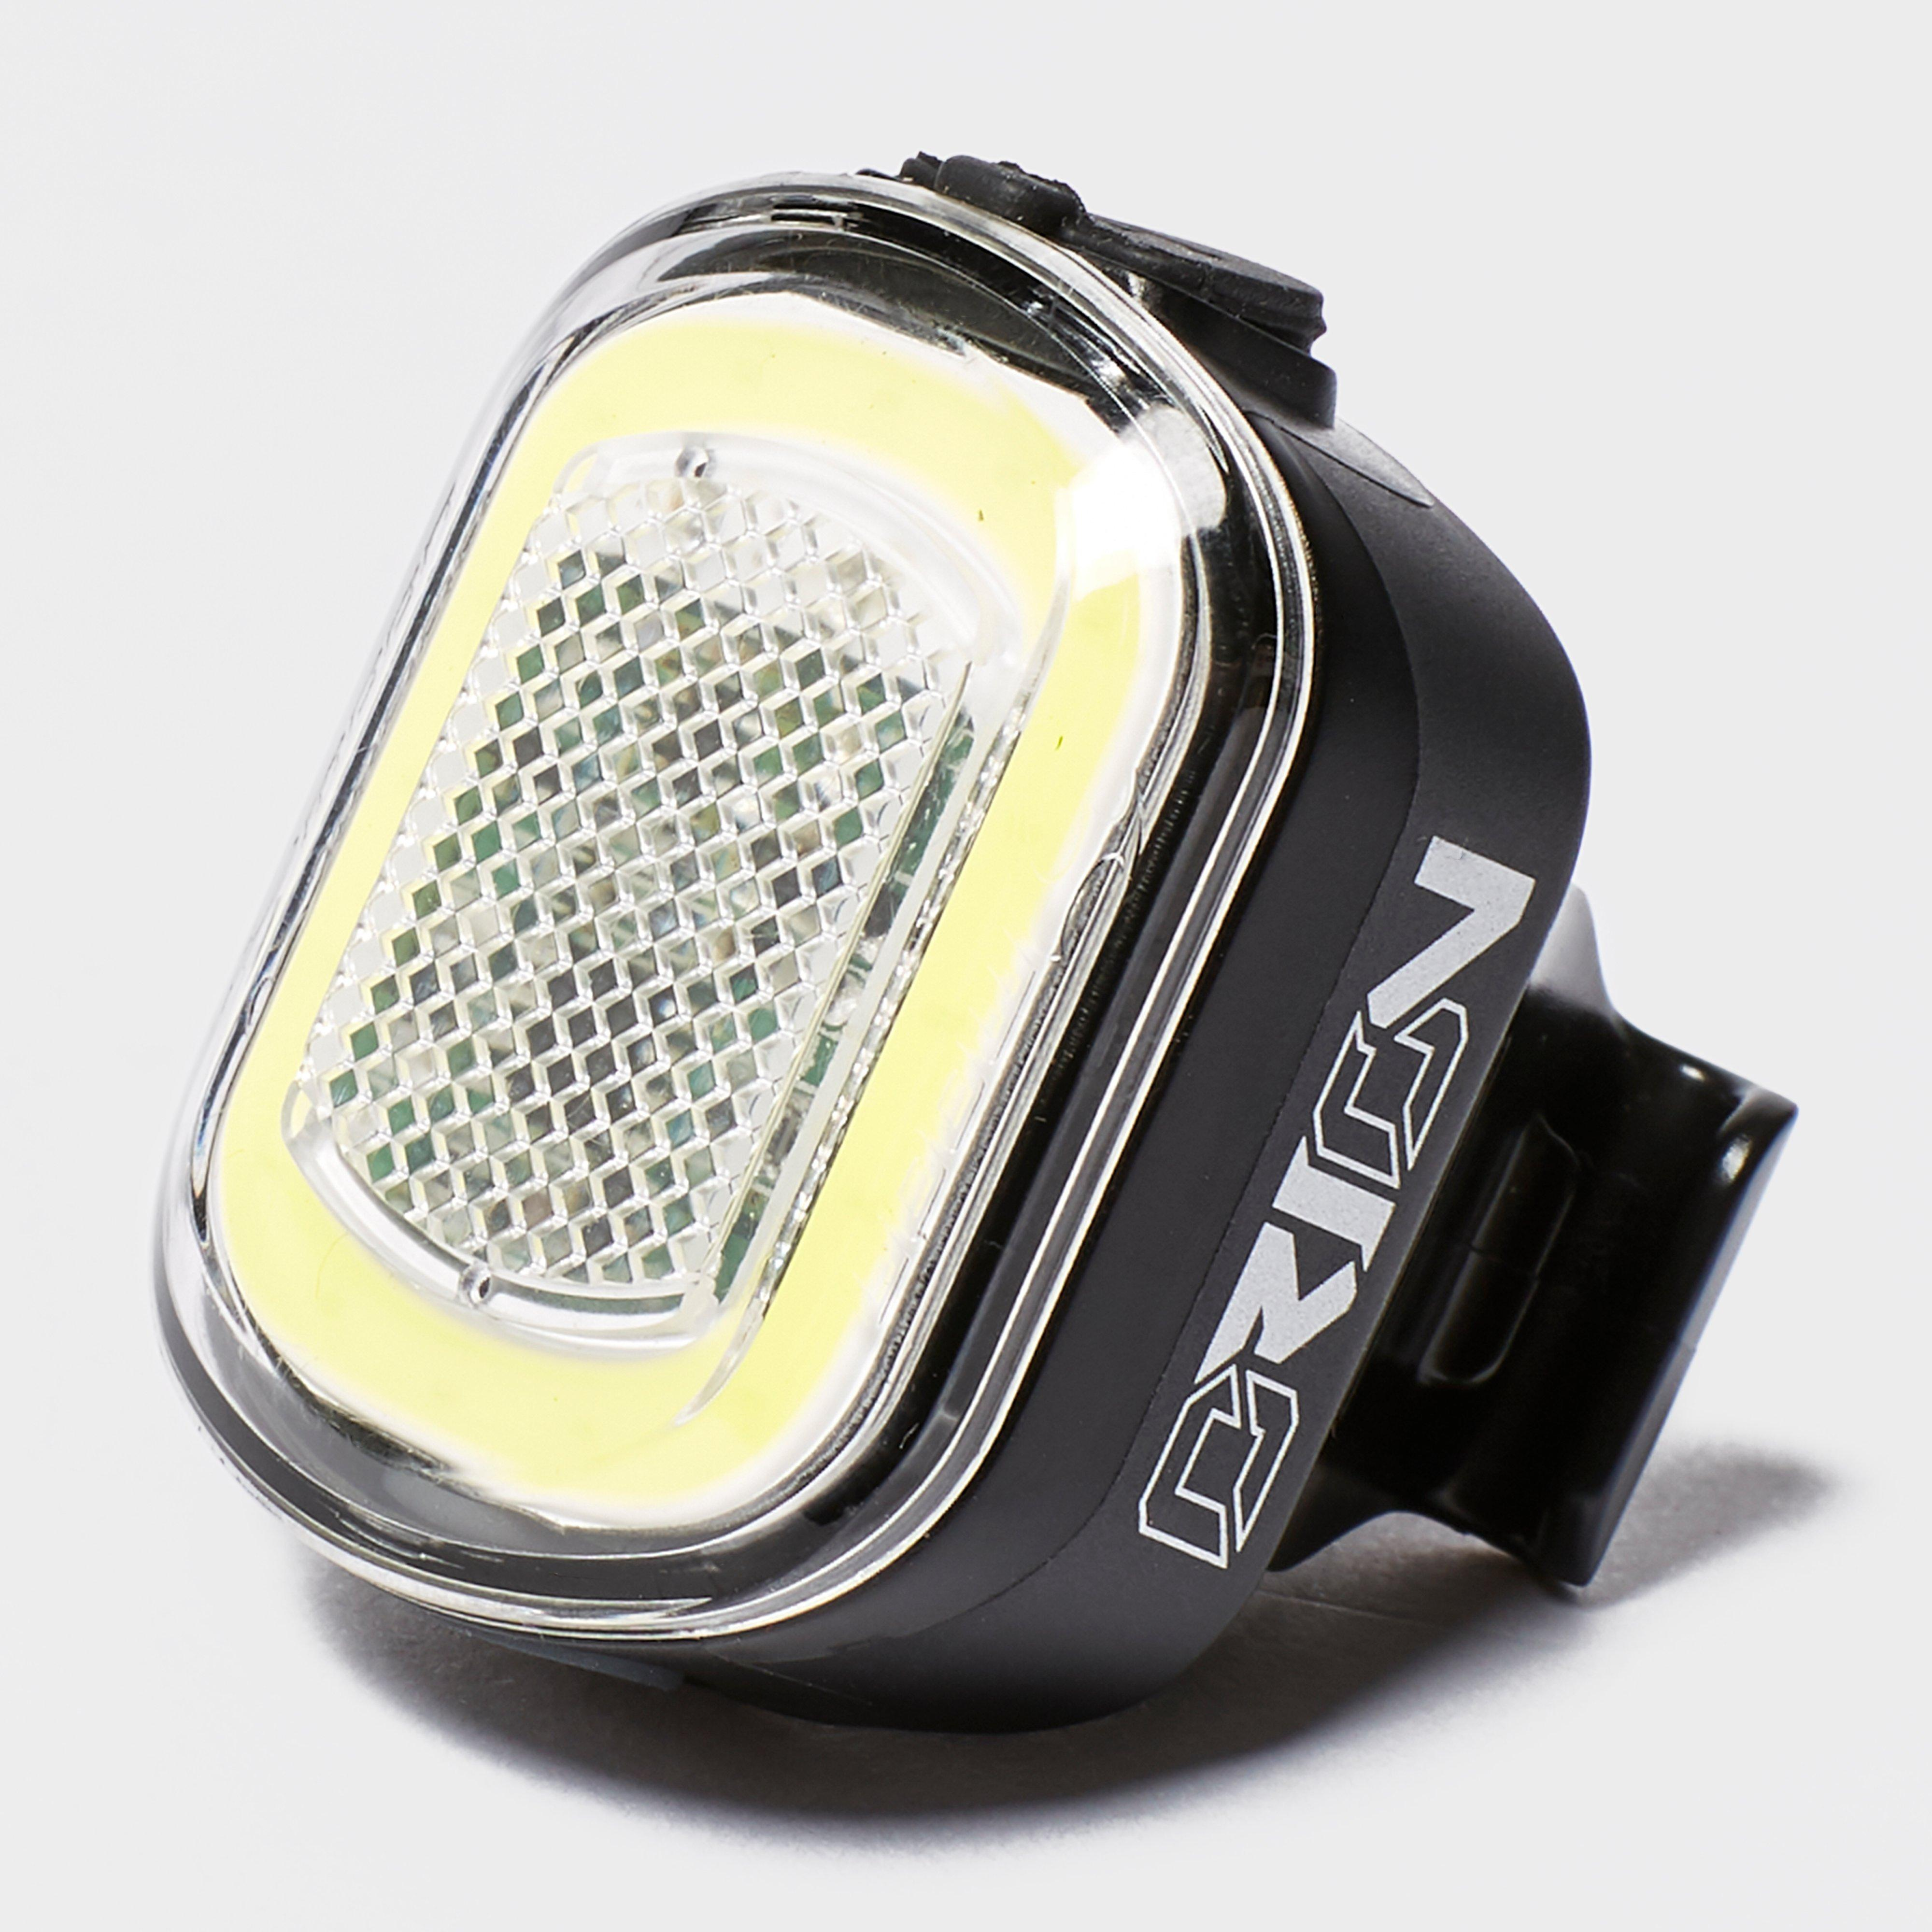 Moonlights Comet-X Bike Light - N/A, N/A